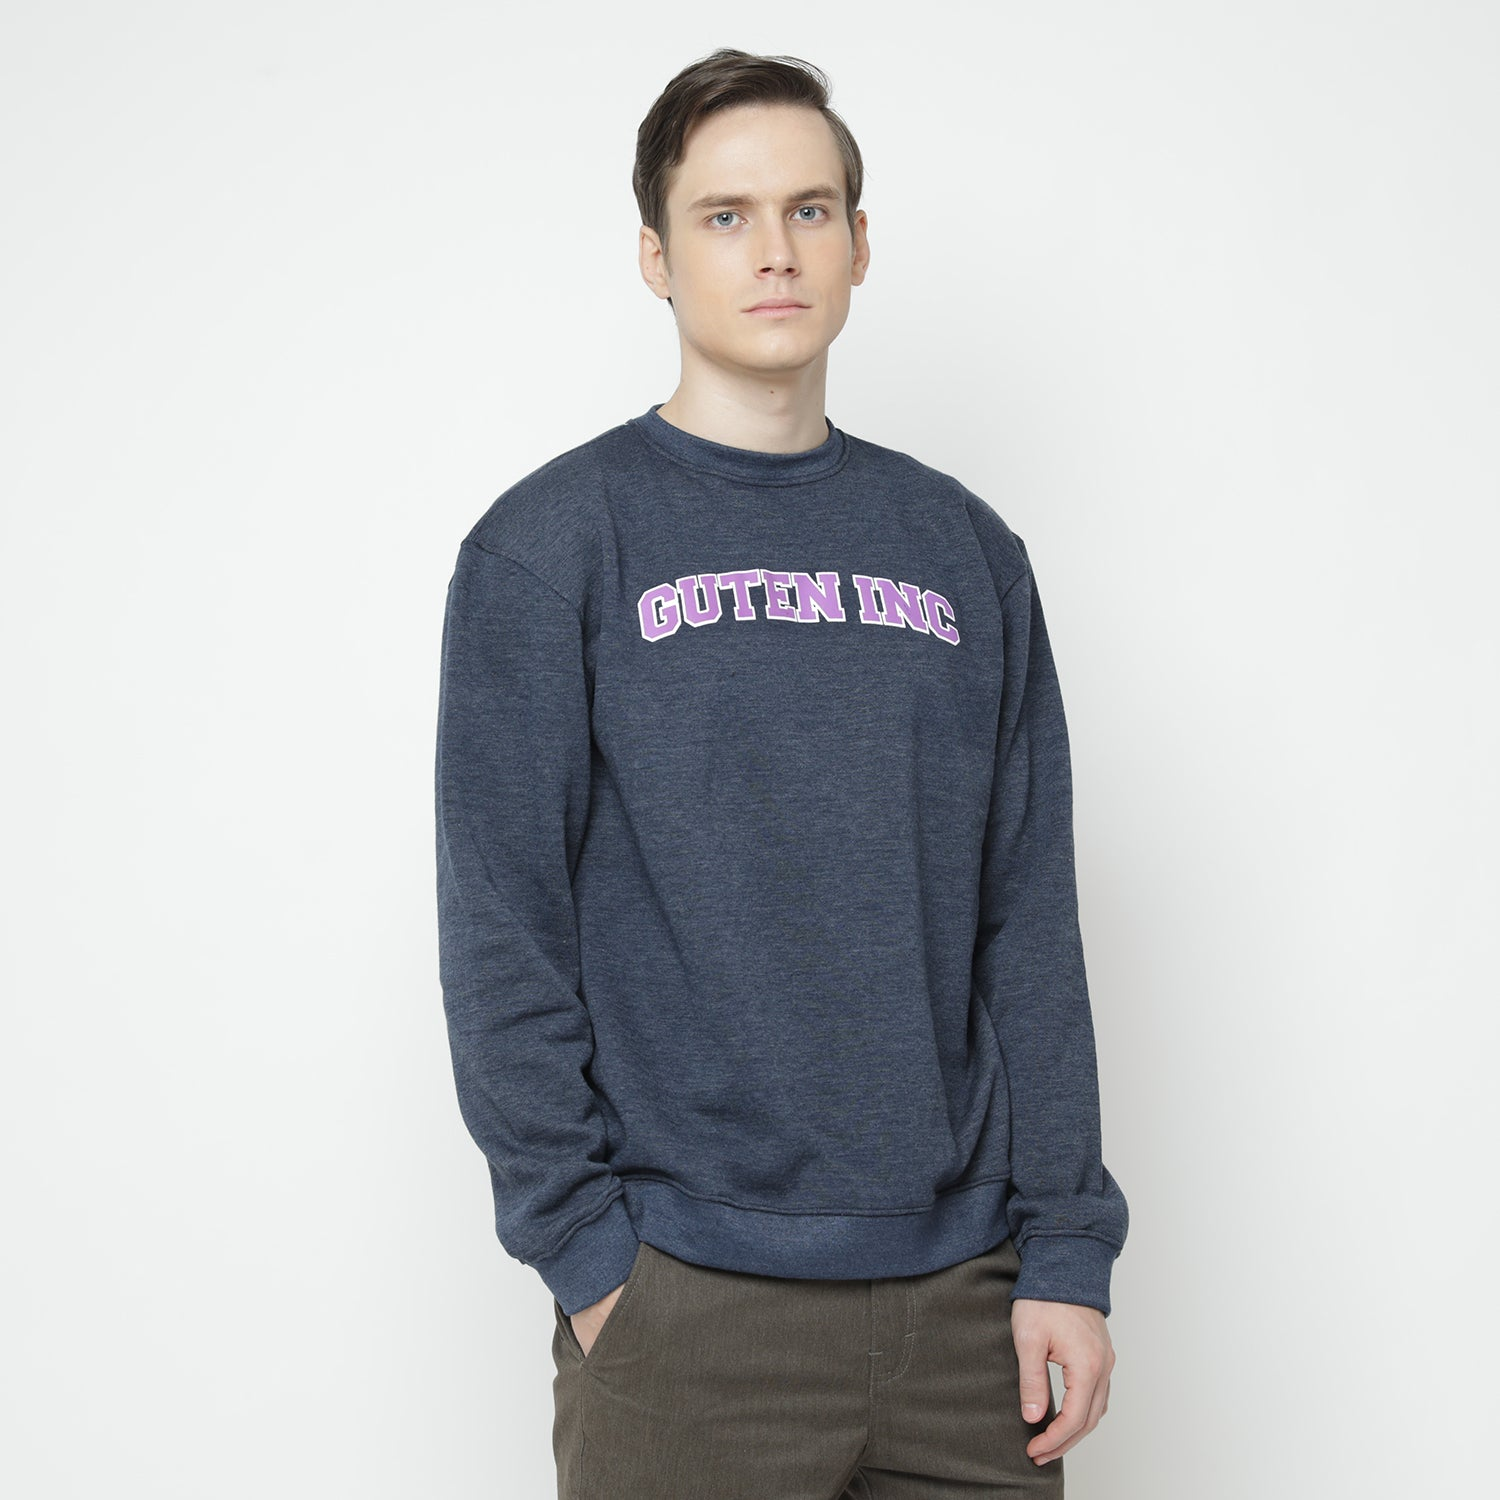 OG College Navy Crewneck Sweatshirt